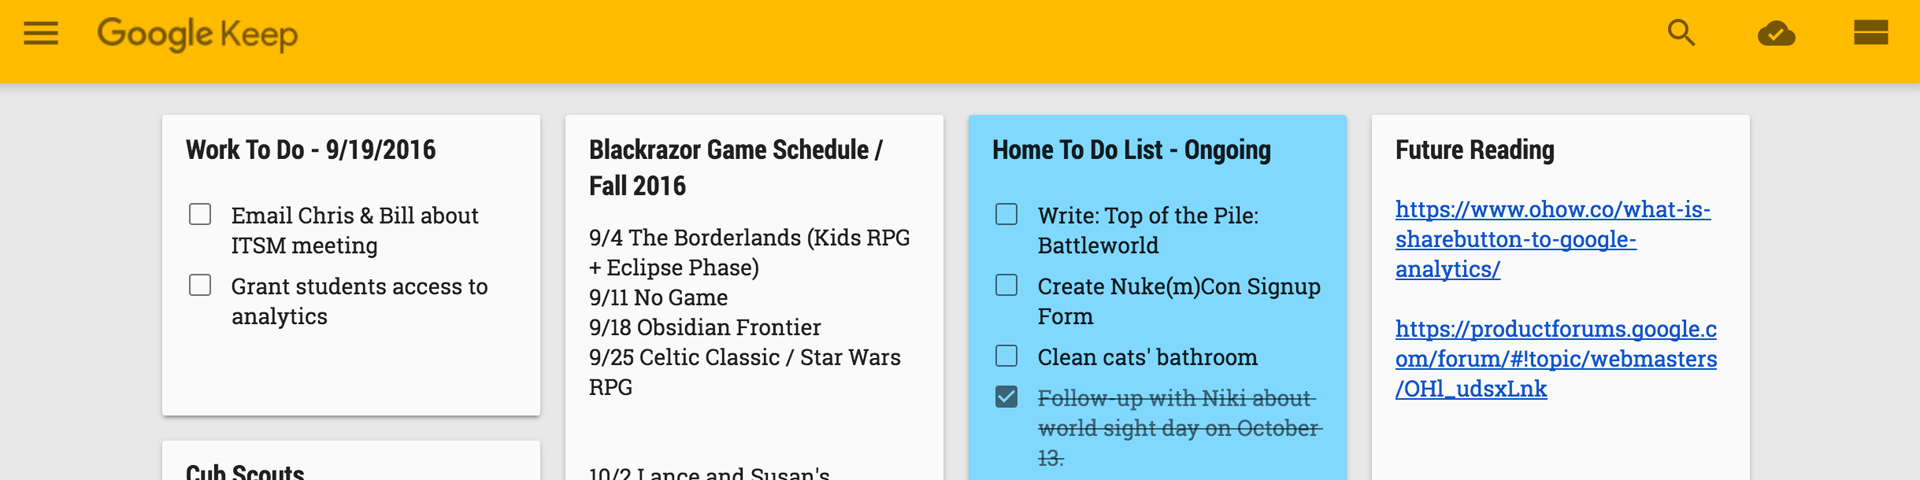 Sticky-note-like blocks of to do lists fill the screen.